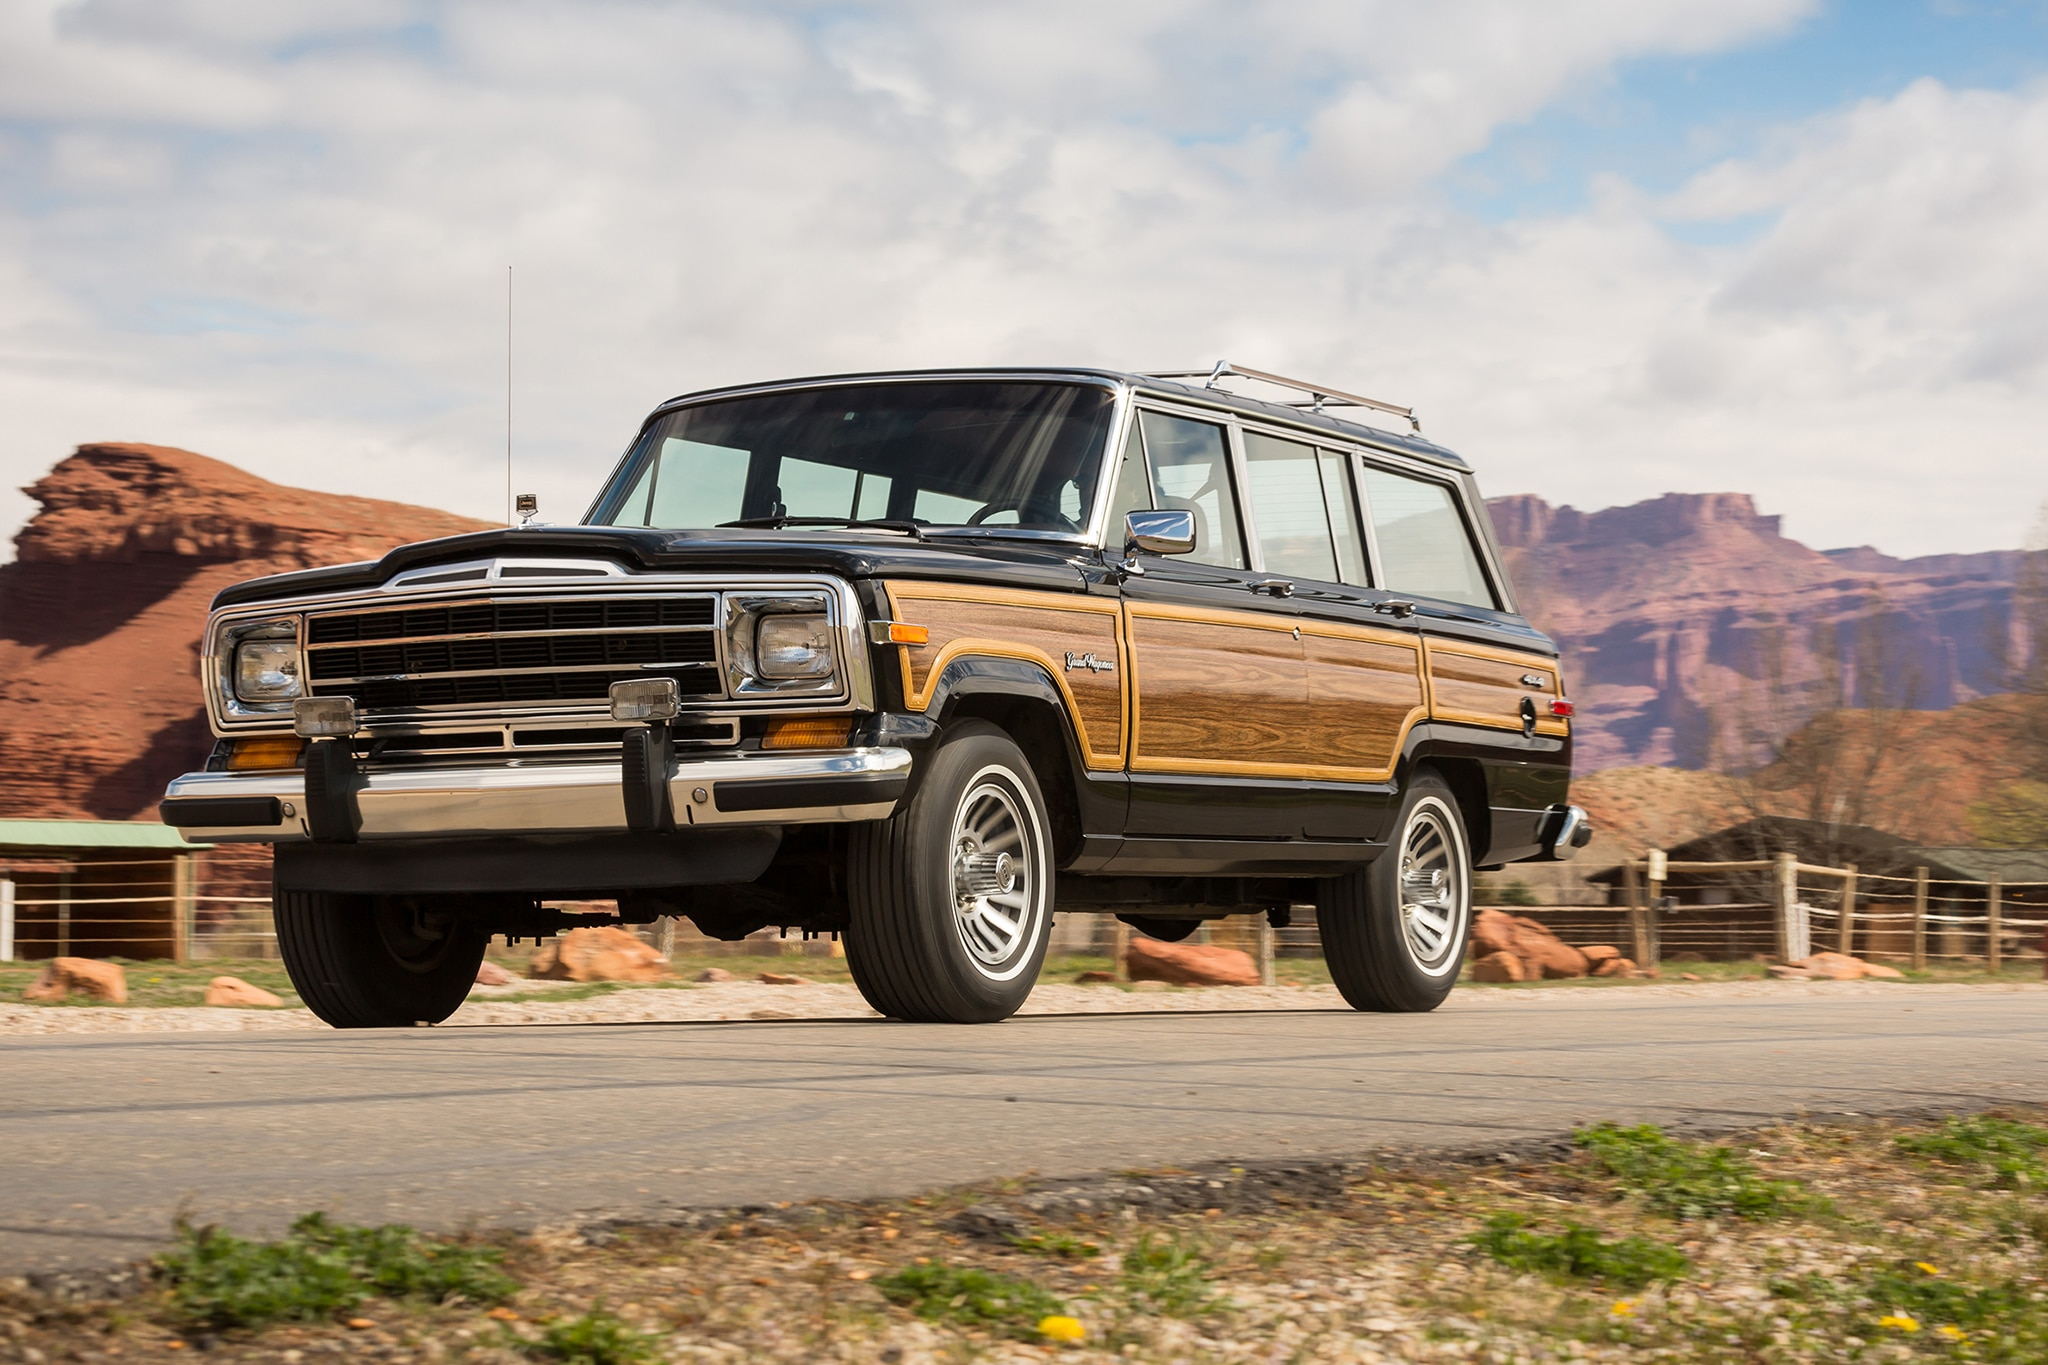 jeep grand wagoneer could cost up to $140,000: report   automobile